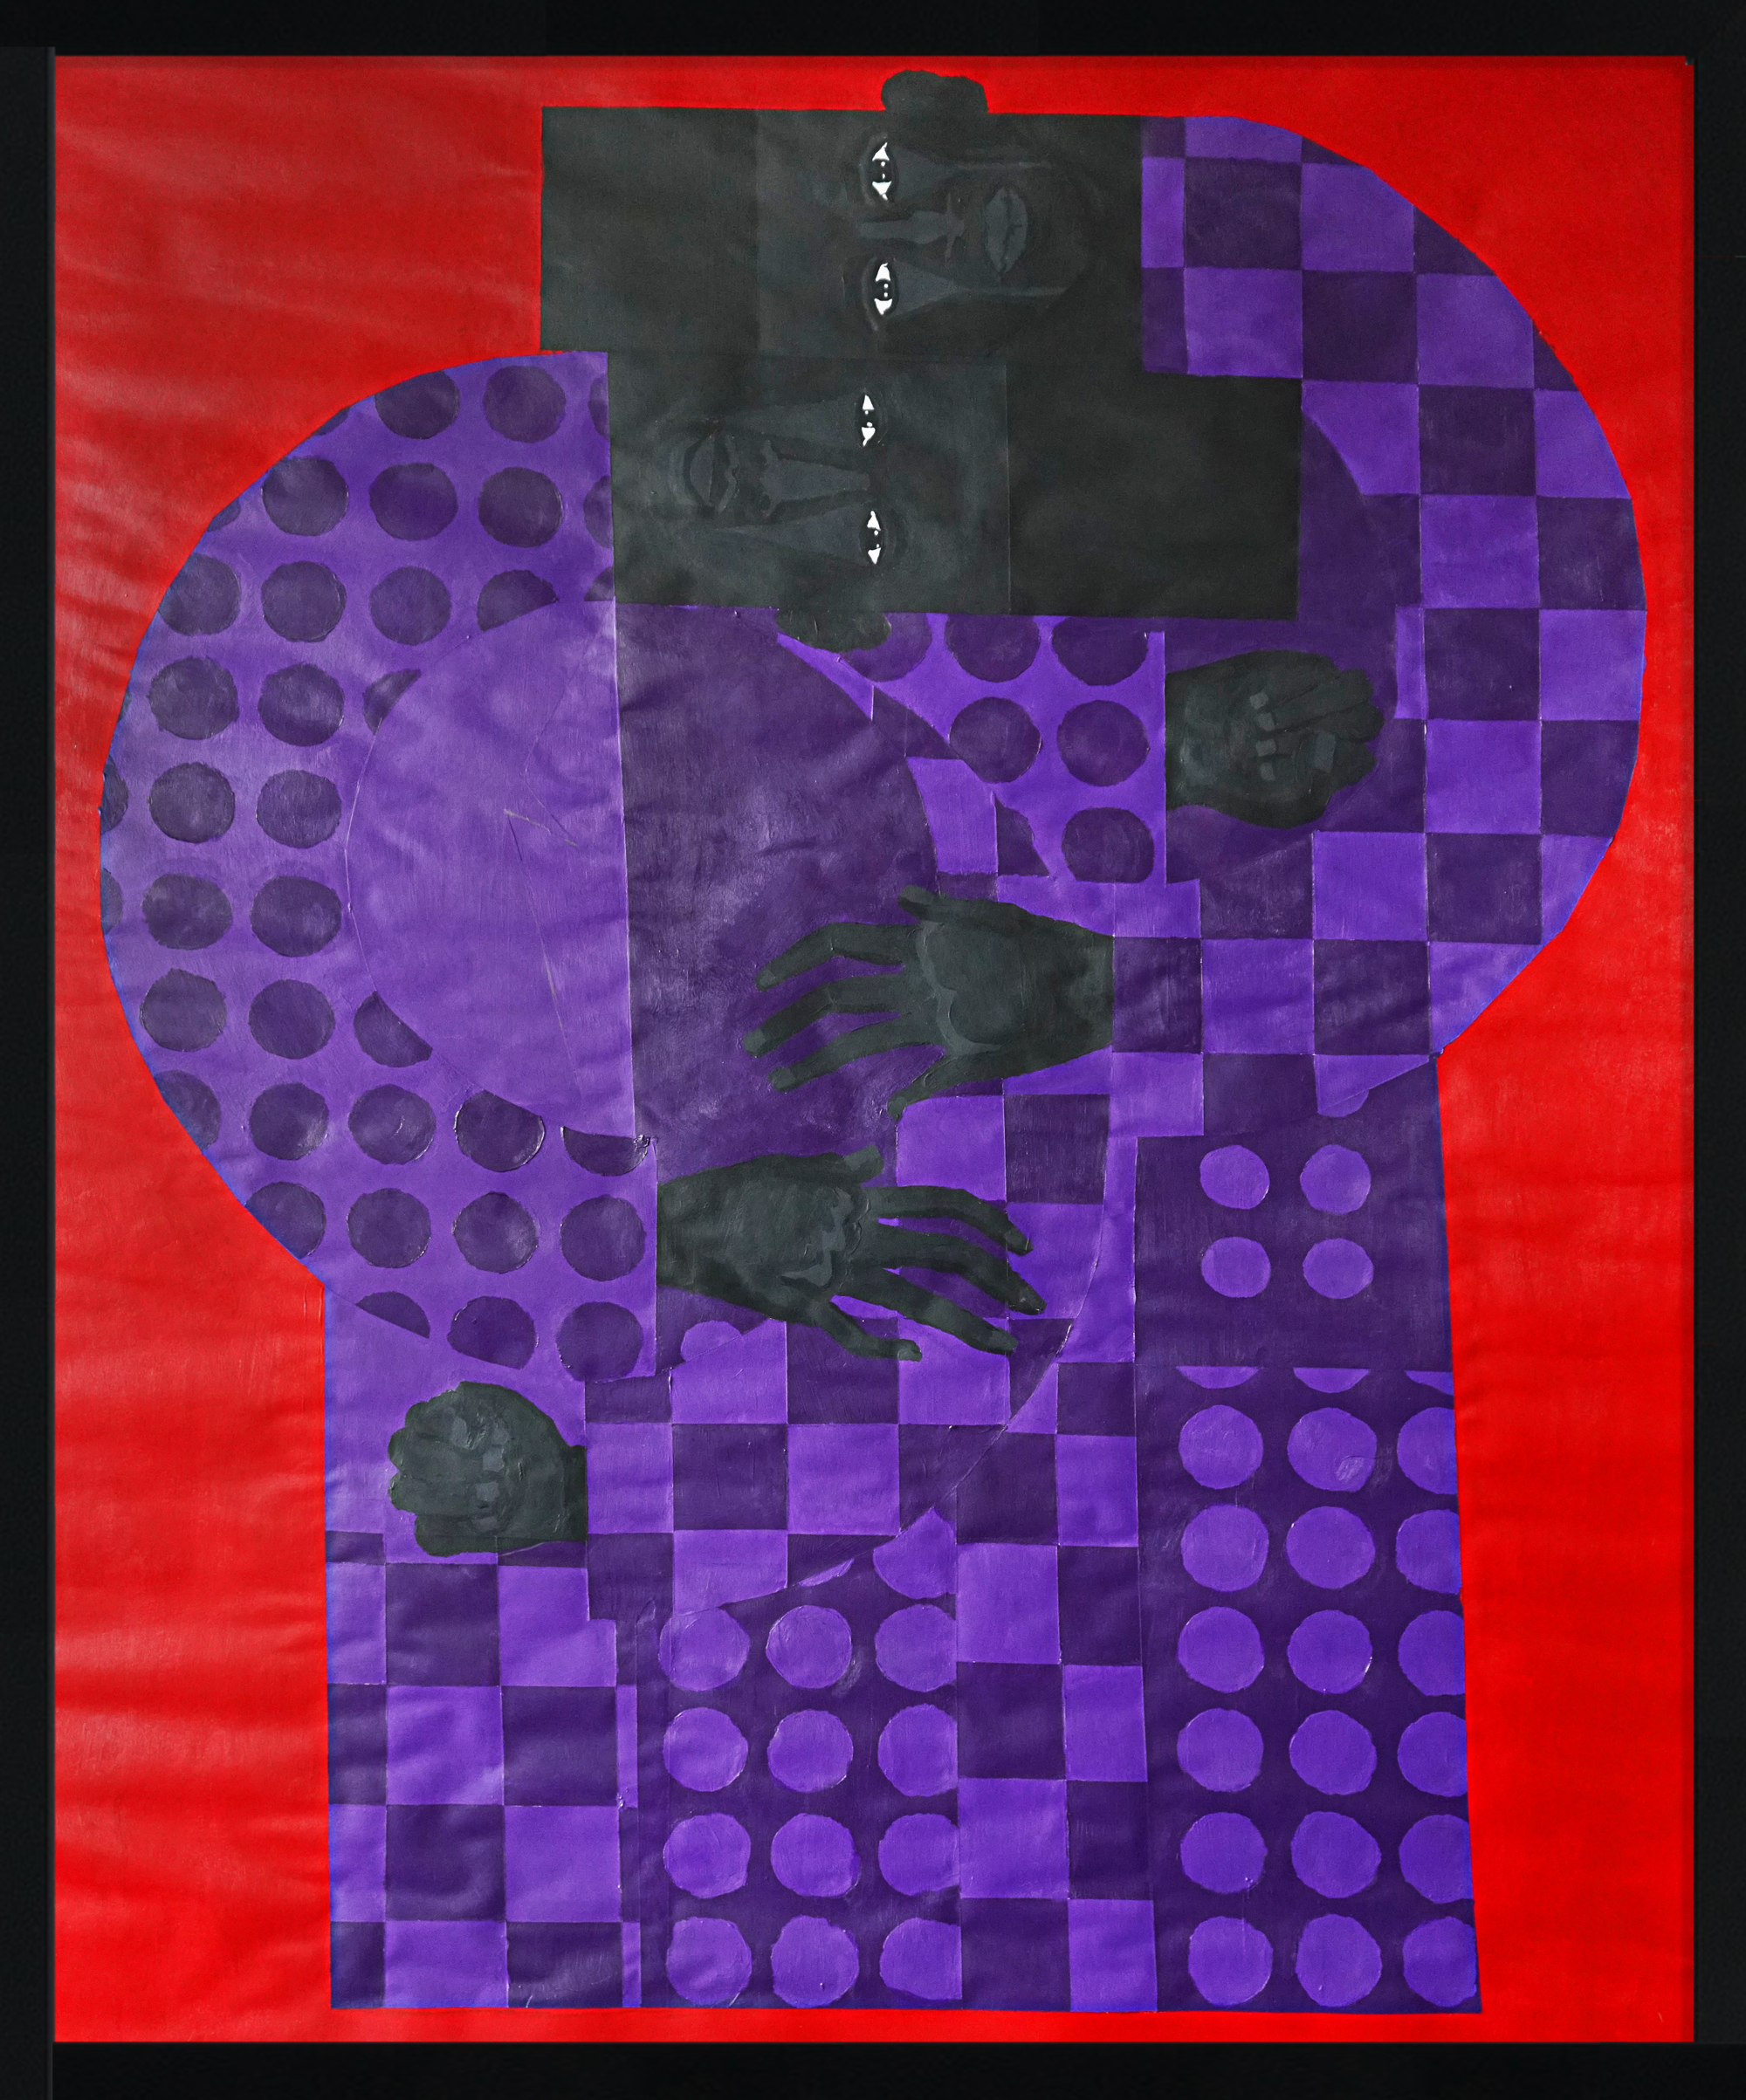 "Title: The Twins in the Violet Suit No.2 Artist: Jon Key Year: 2018 Medium: Acrylic on paper Dimensions: 46"" x 35"" Price: $3800"